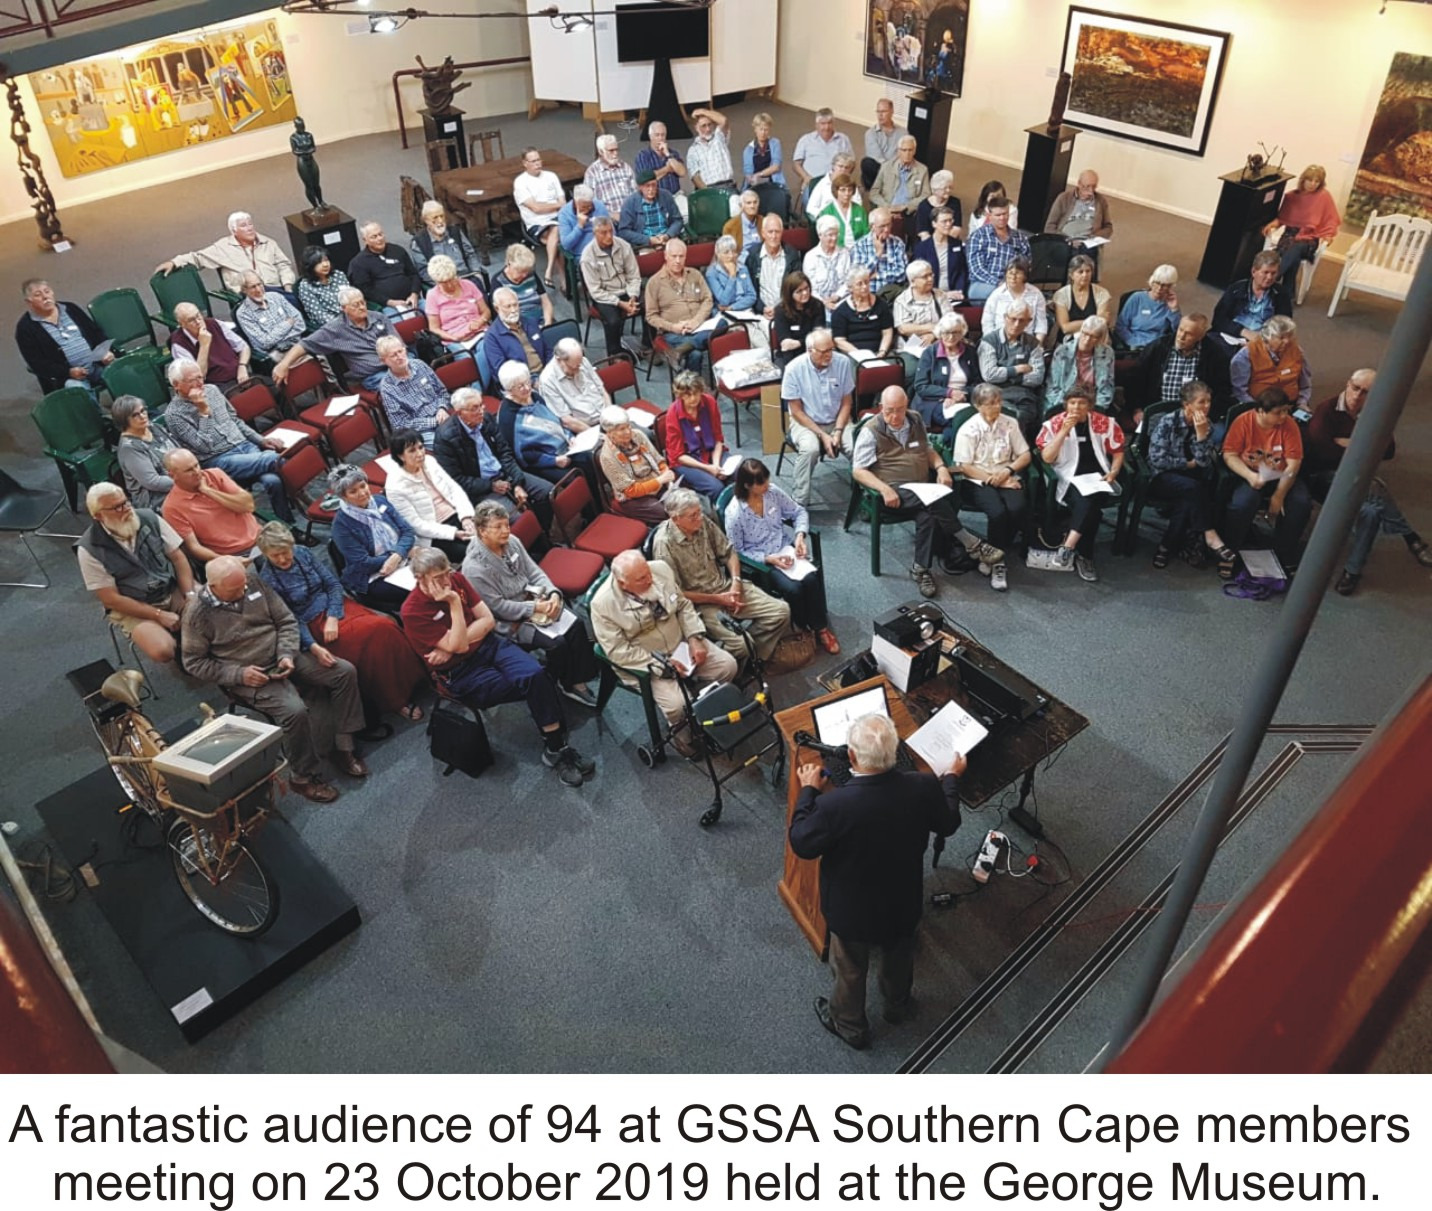 Fantastic audience of 94 at GSSA Southern Cape members meeting on 23 October at the George Museumjpeg